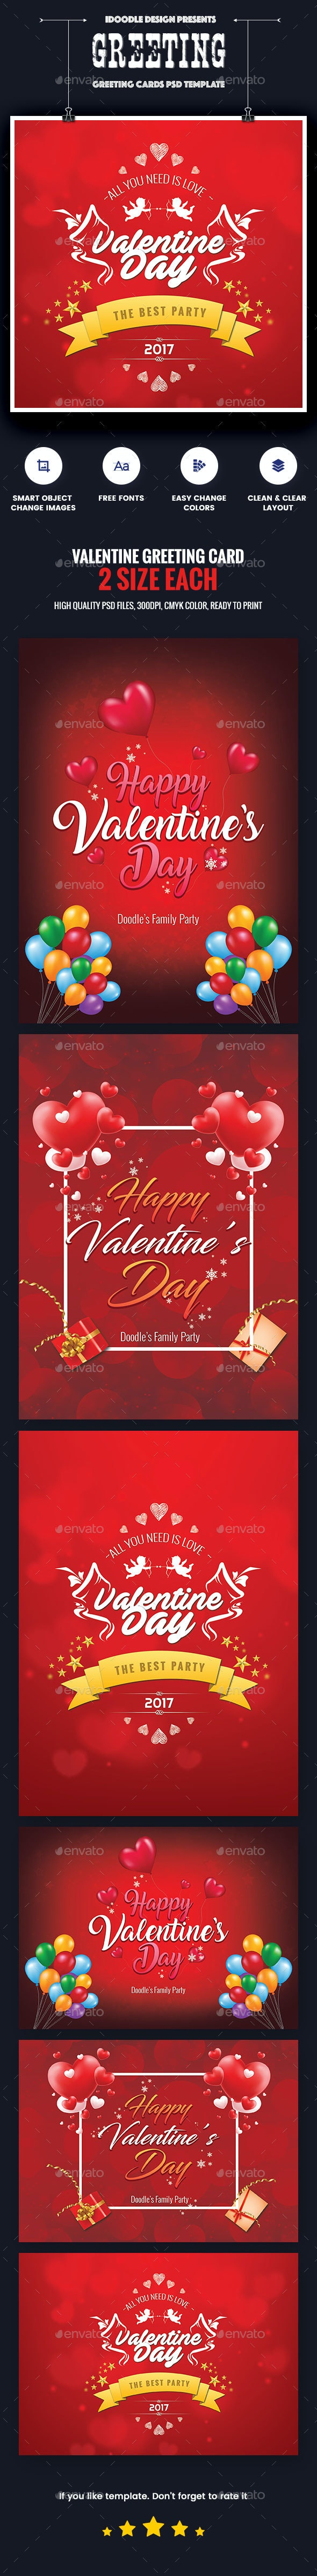 Valentine Greeting Card - 06 PSD [02 Size Each - 7x5 & 5x7] - Anniversary Greeting Cards